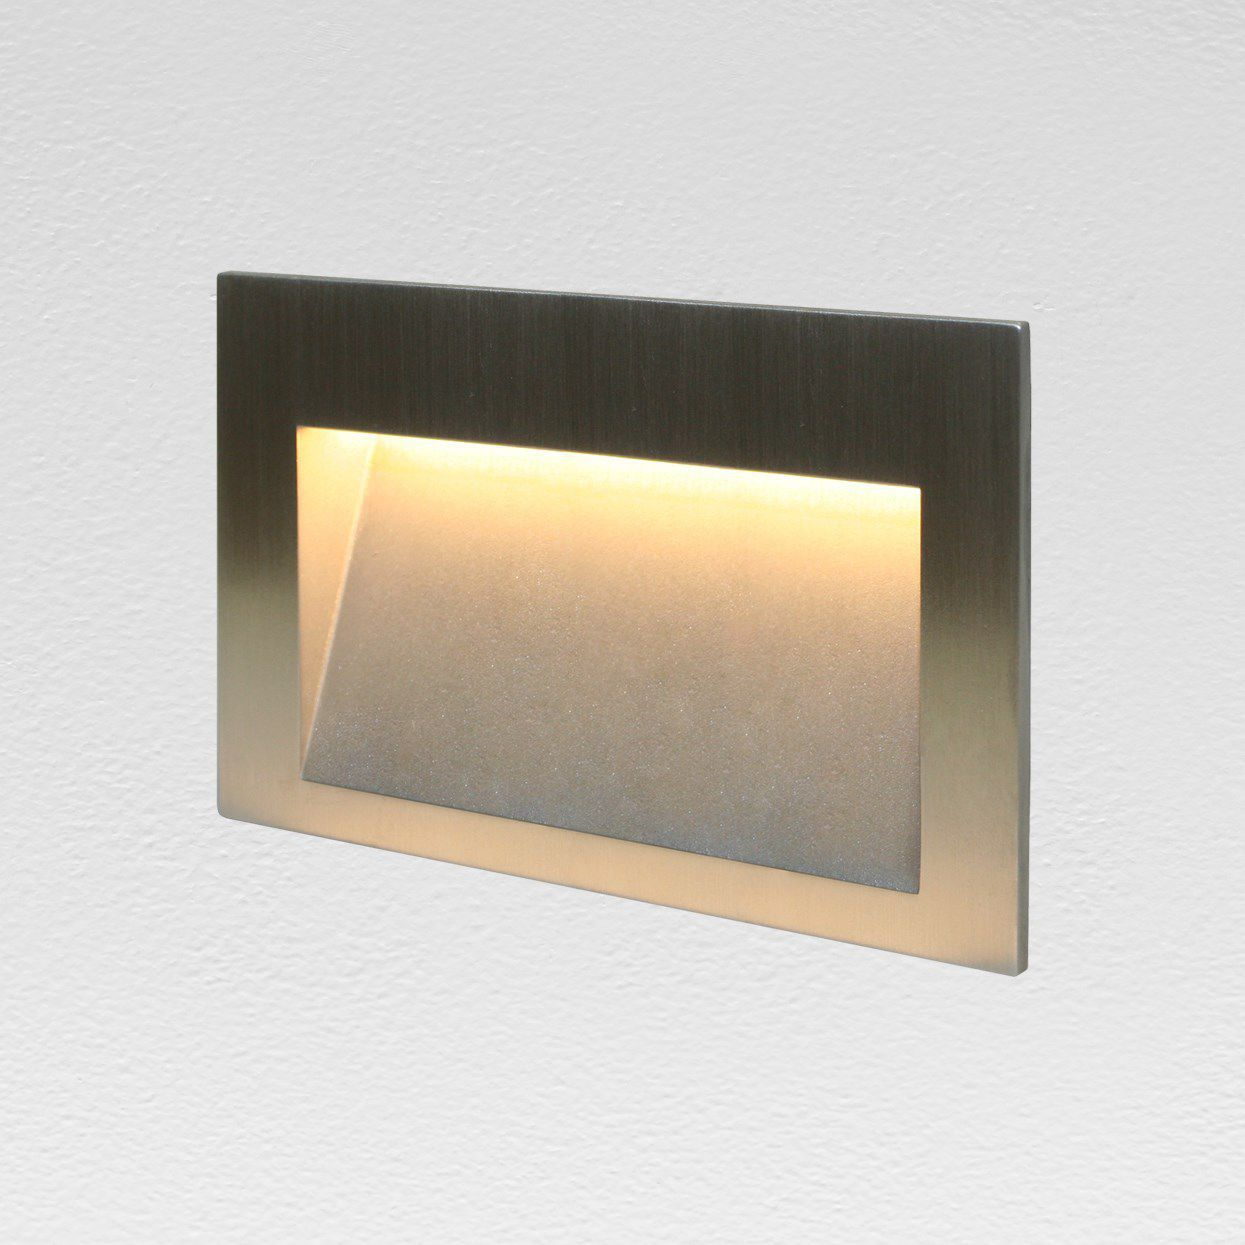 Recessed wall light fixture led square rectangular isl led recessed wall light fixture led square rectangular aloadofball Choice Image